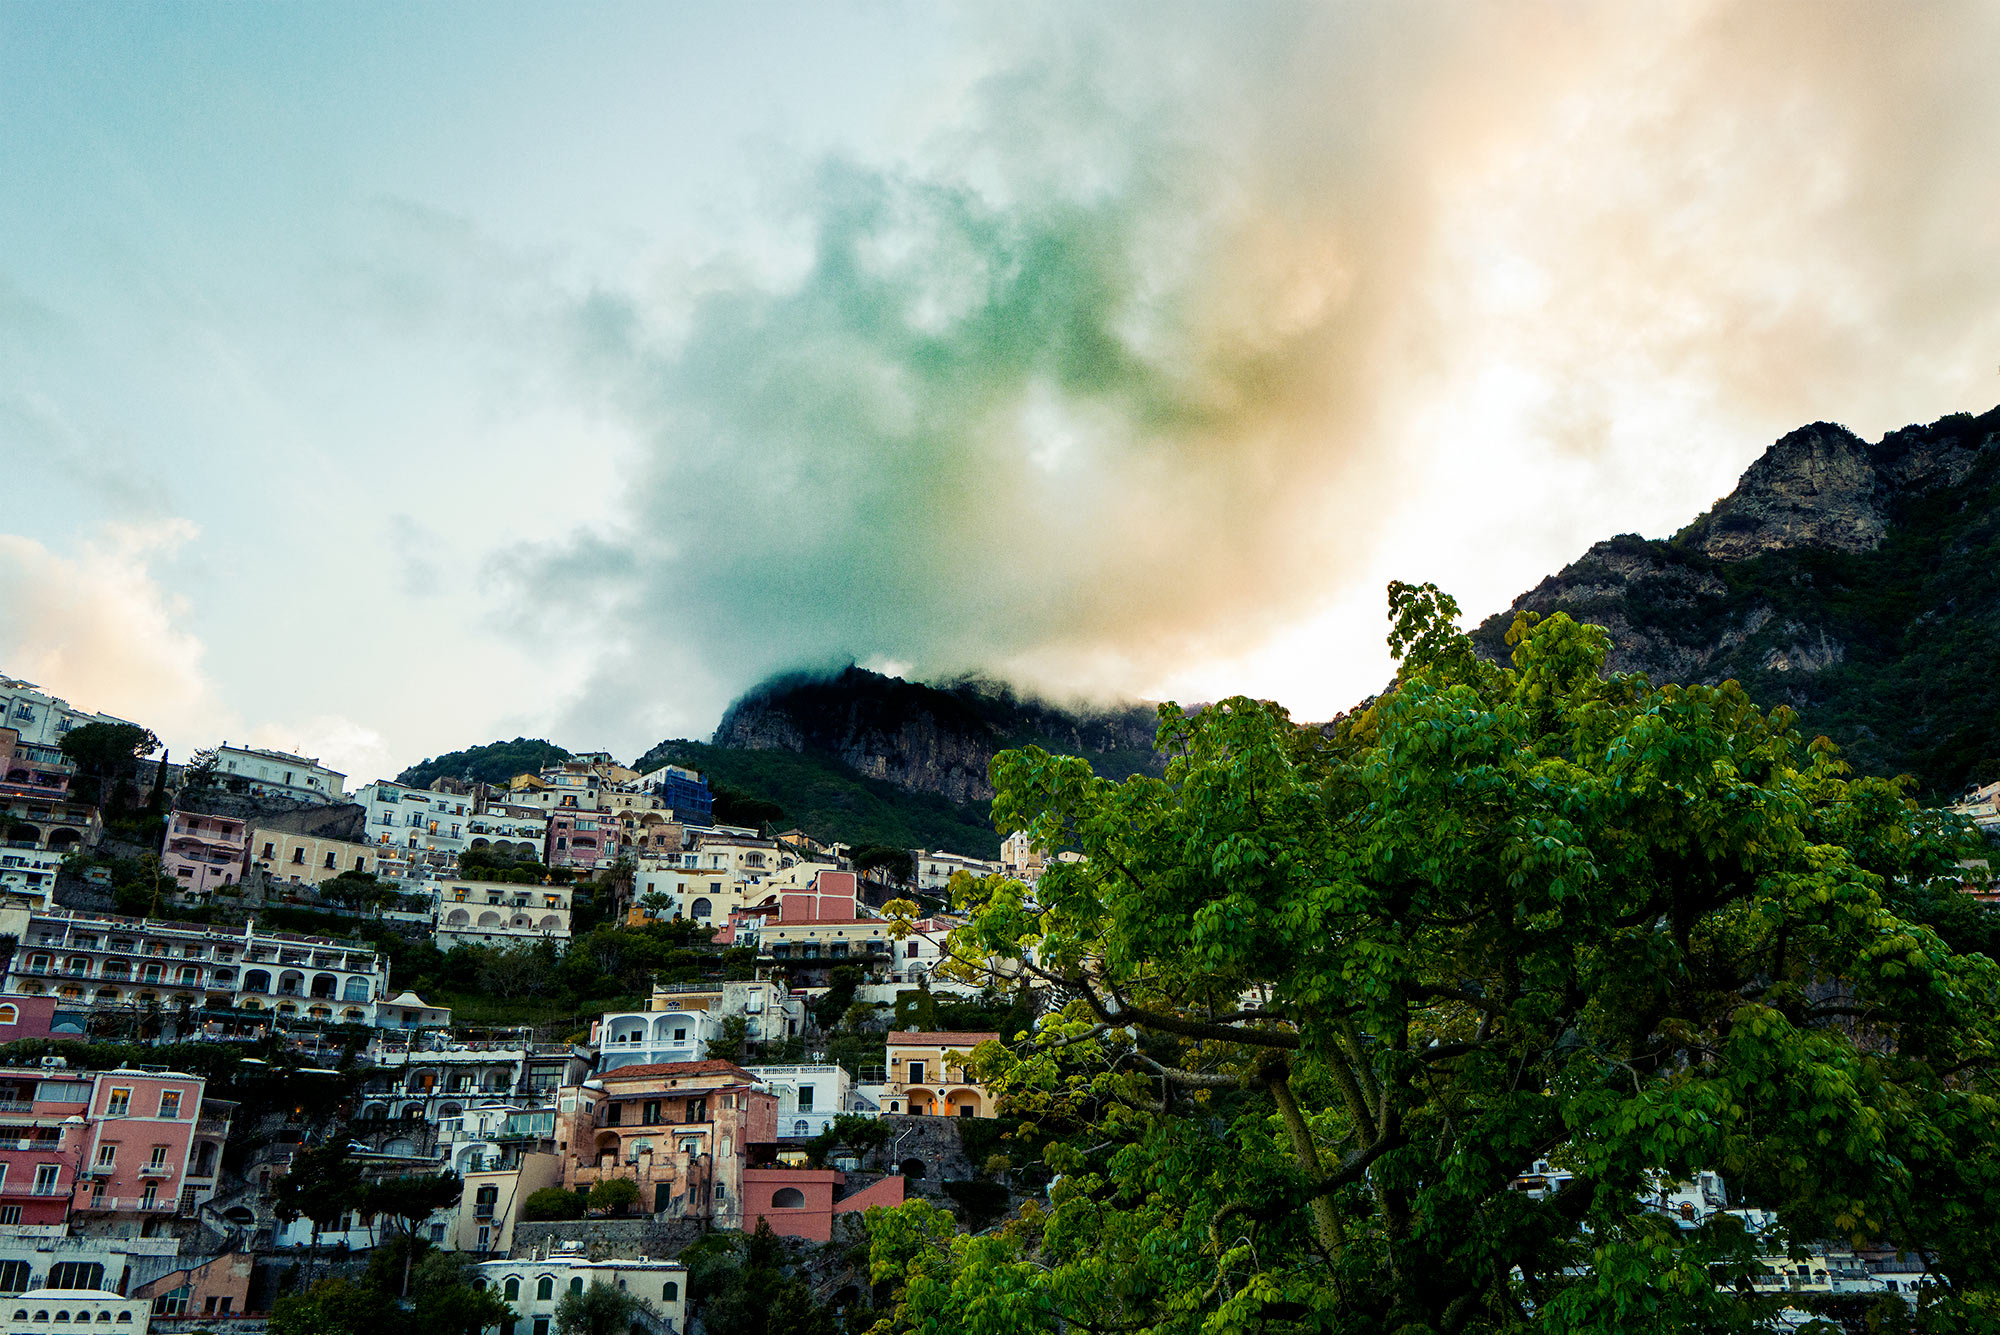 Good Boy Wolf Photographer, filmic landscape, Positano buildings looking up to the sky